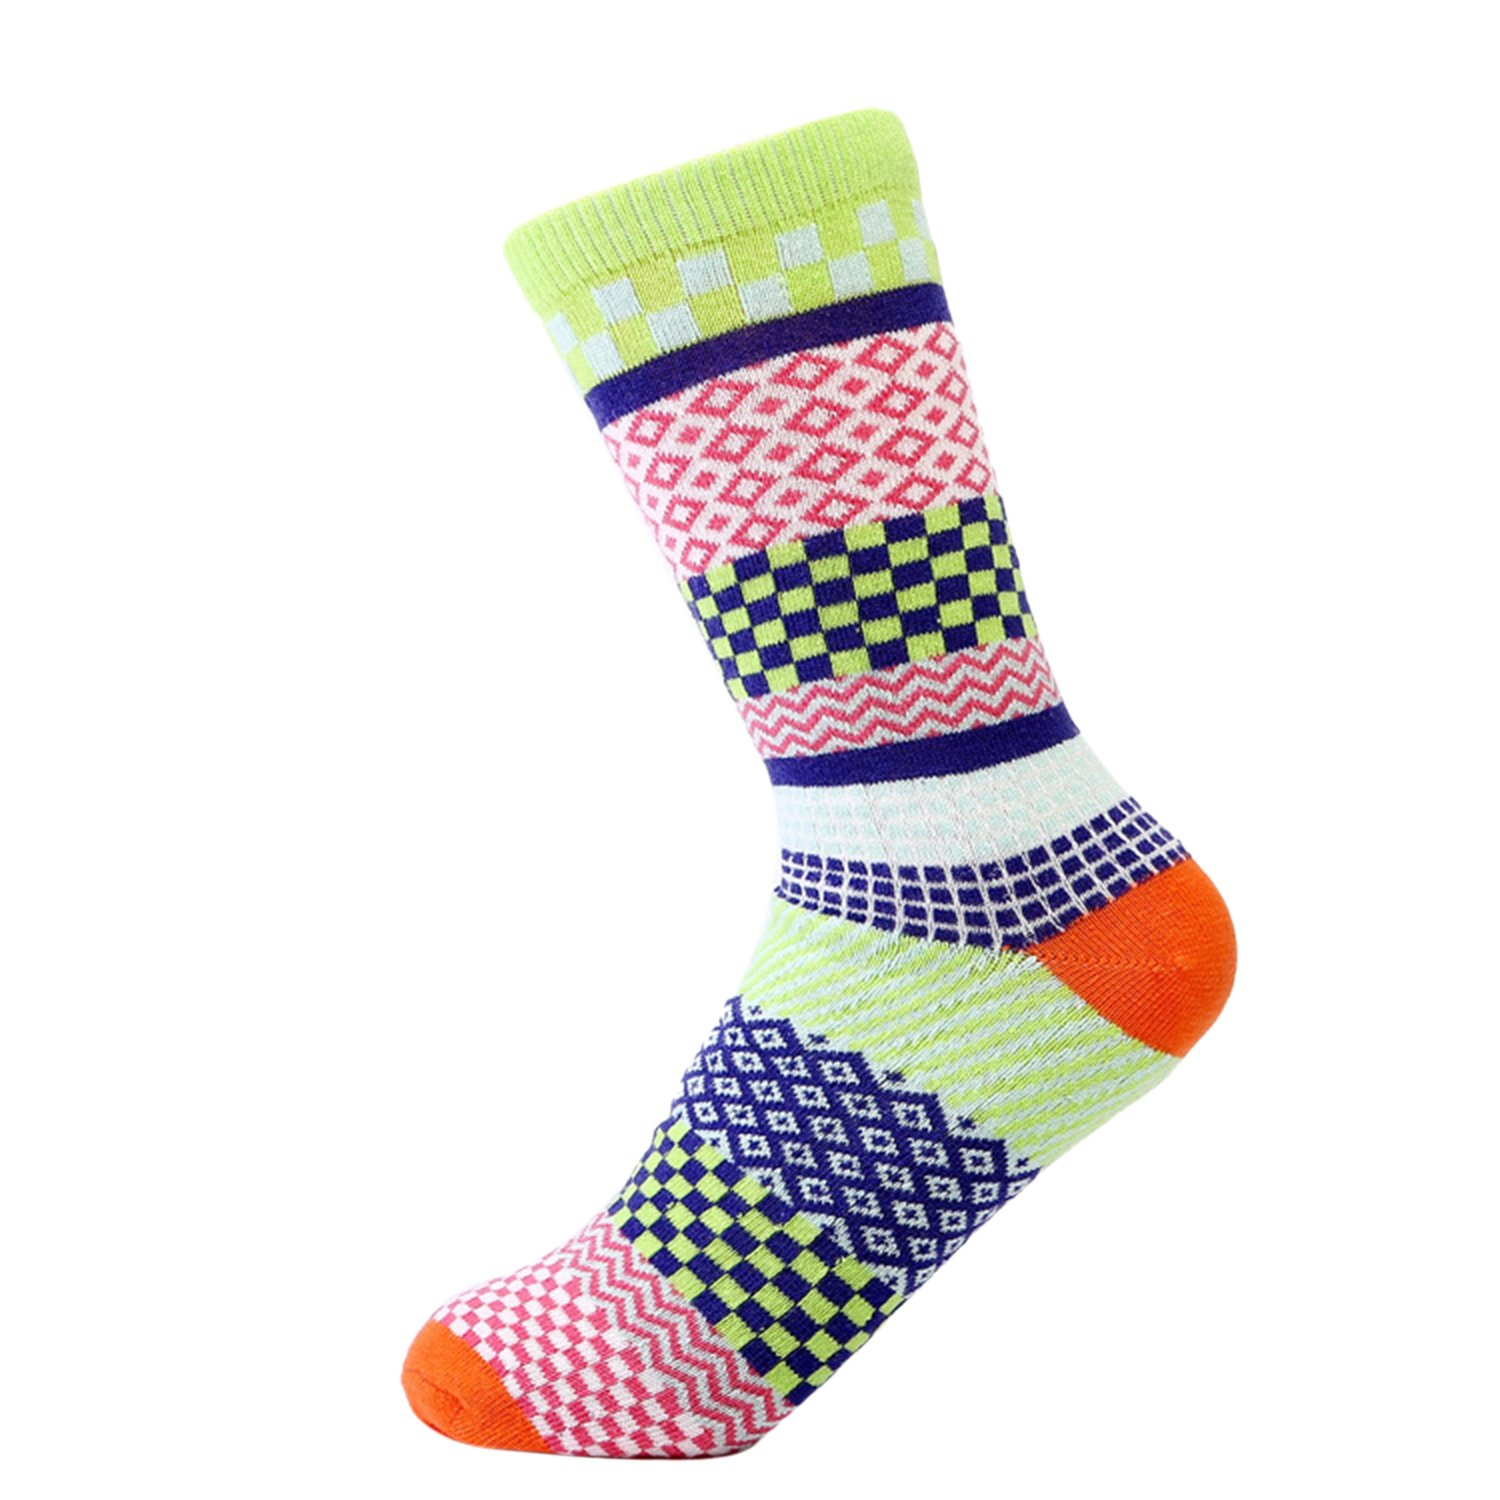 3 Pairs Marijuana Weed Leaf Warm Cotton High Sport Socks One Size